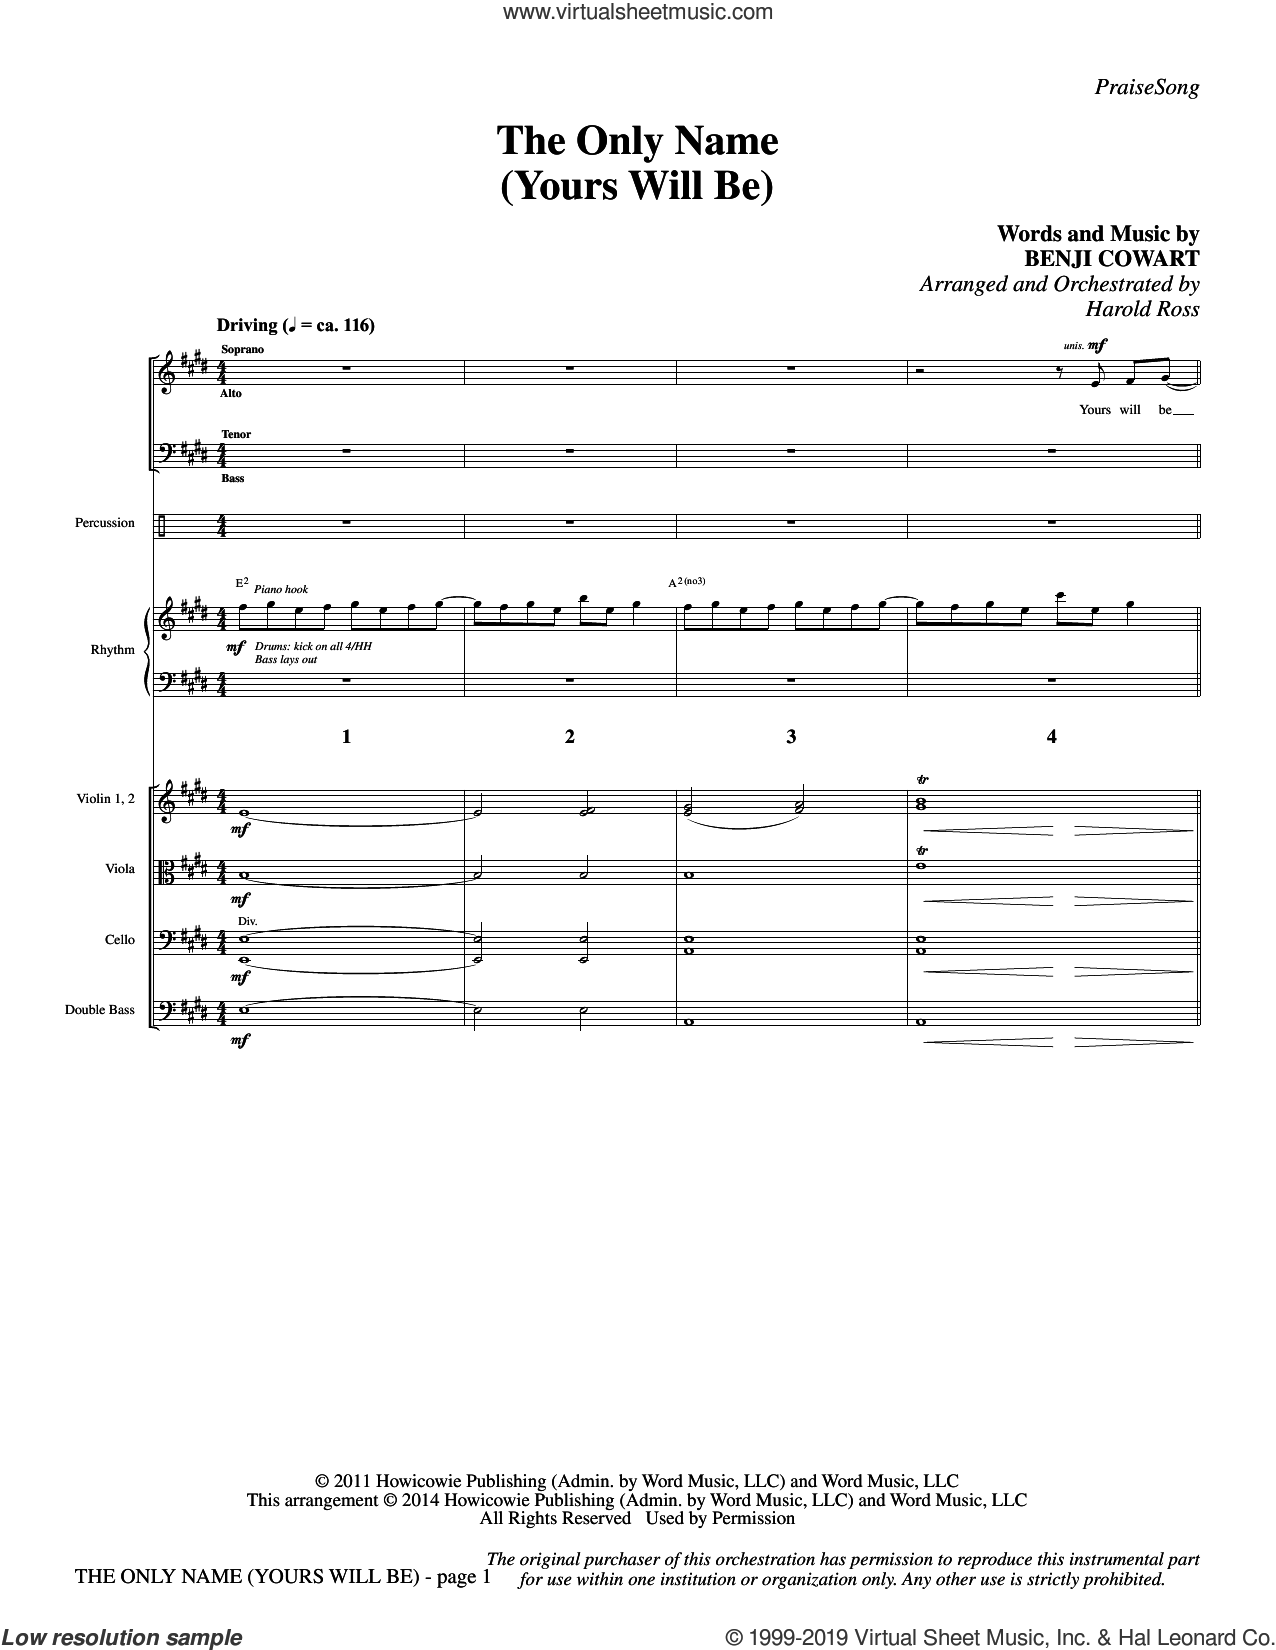 The Only Name (Yours Will Be) (COMPLETE) sheet music for orchestra/band by Harold Ross, Benji Cowart and Big Daddy Weave, intermediate skill level